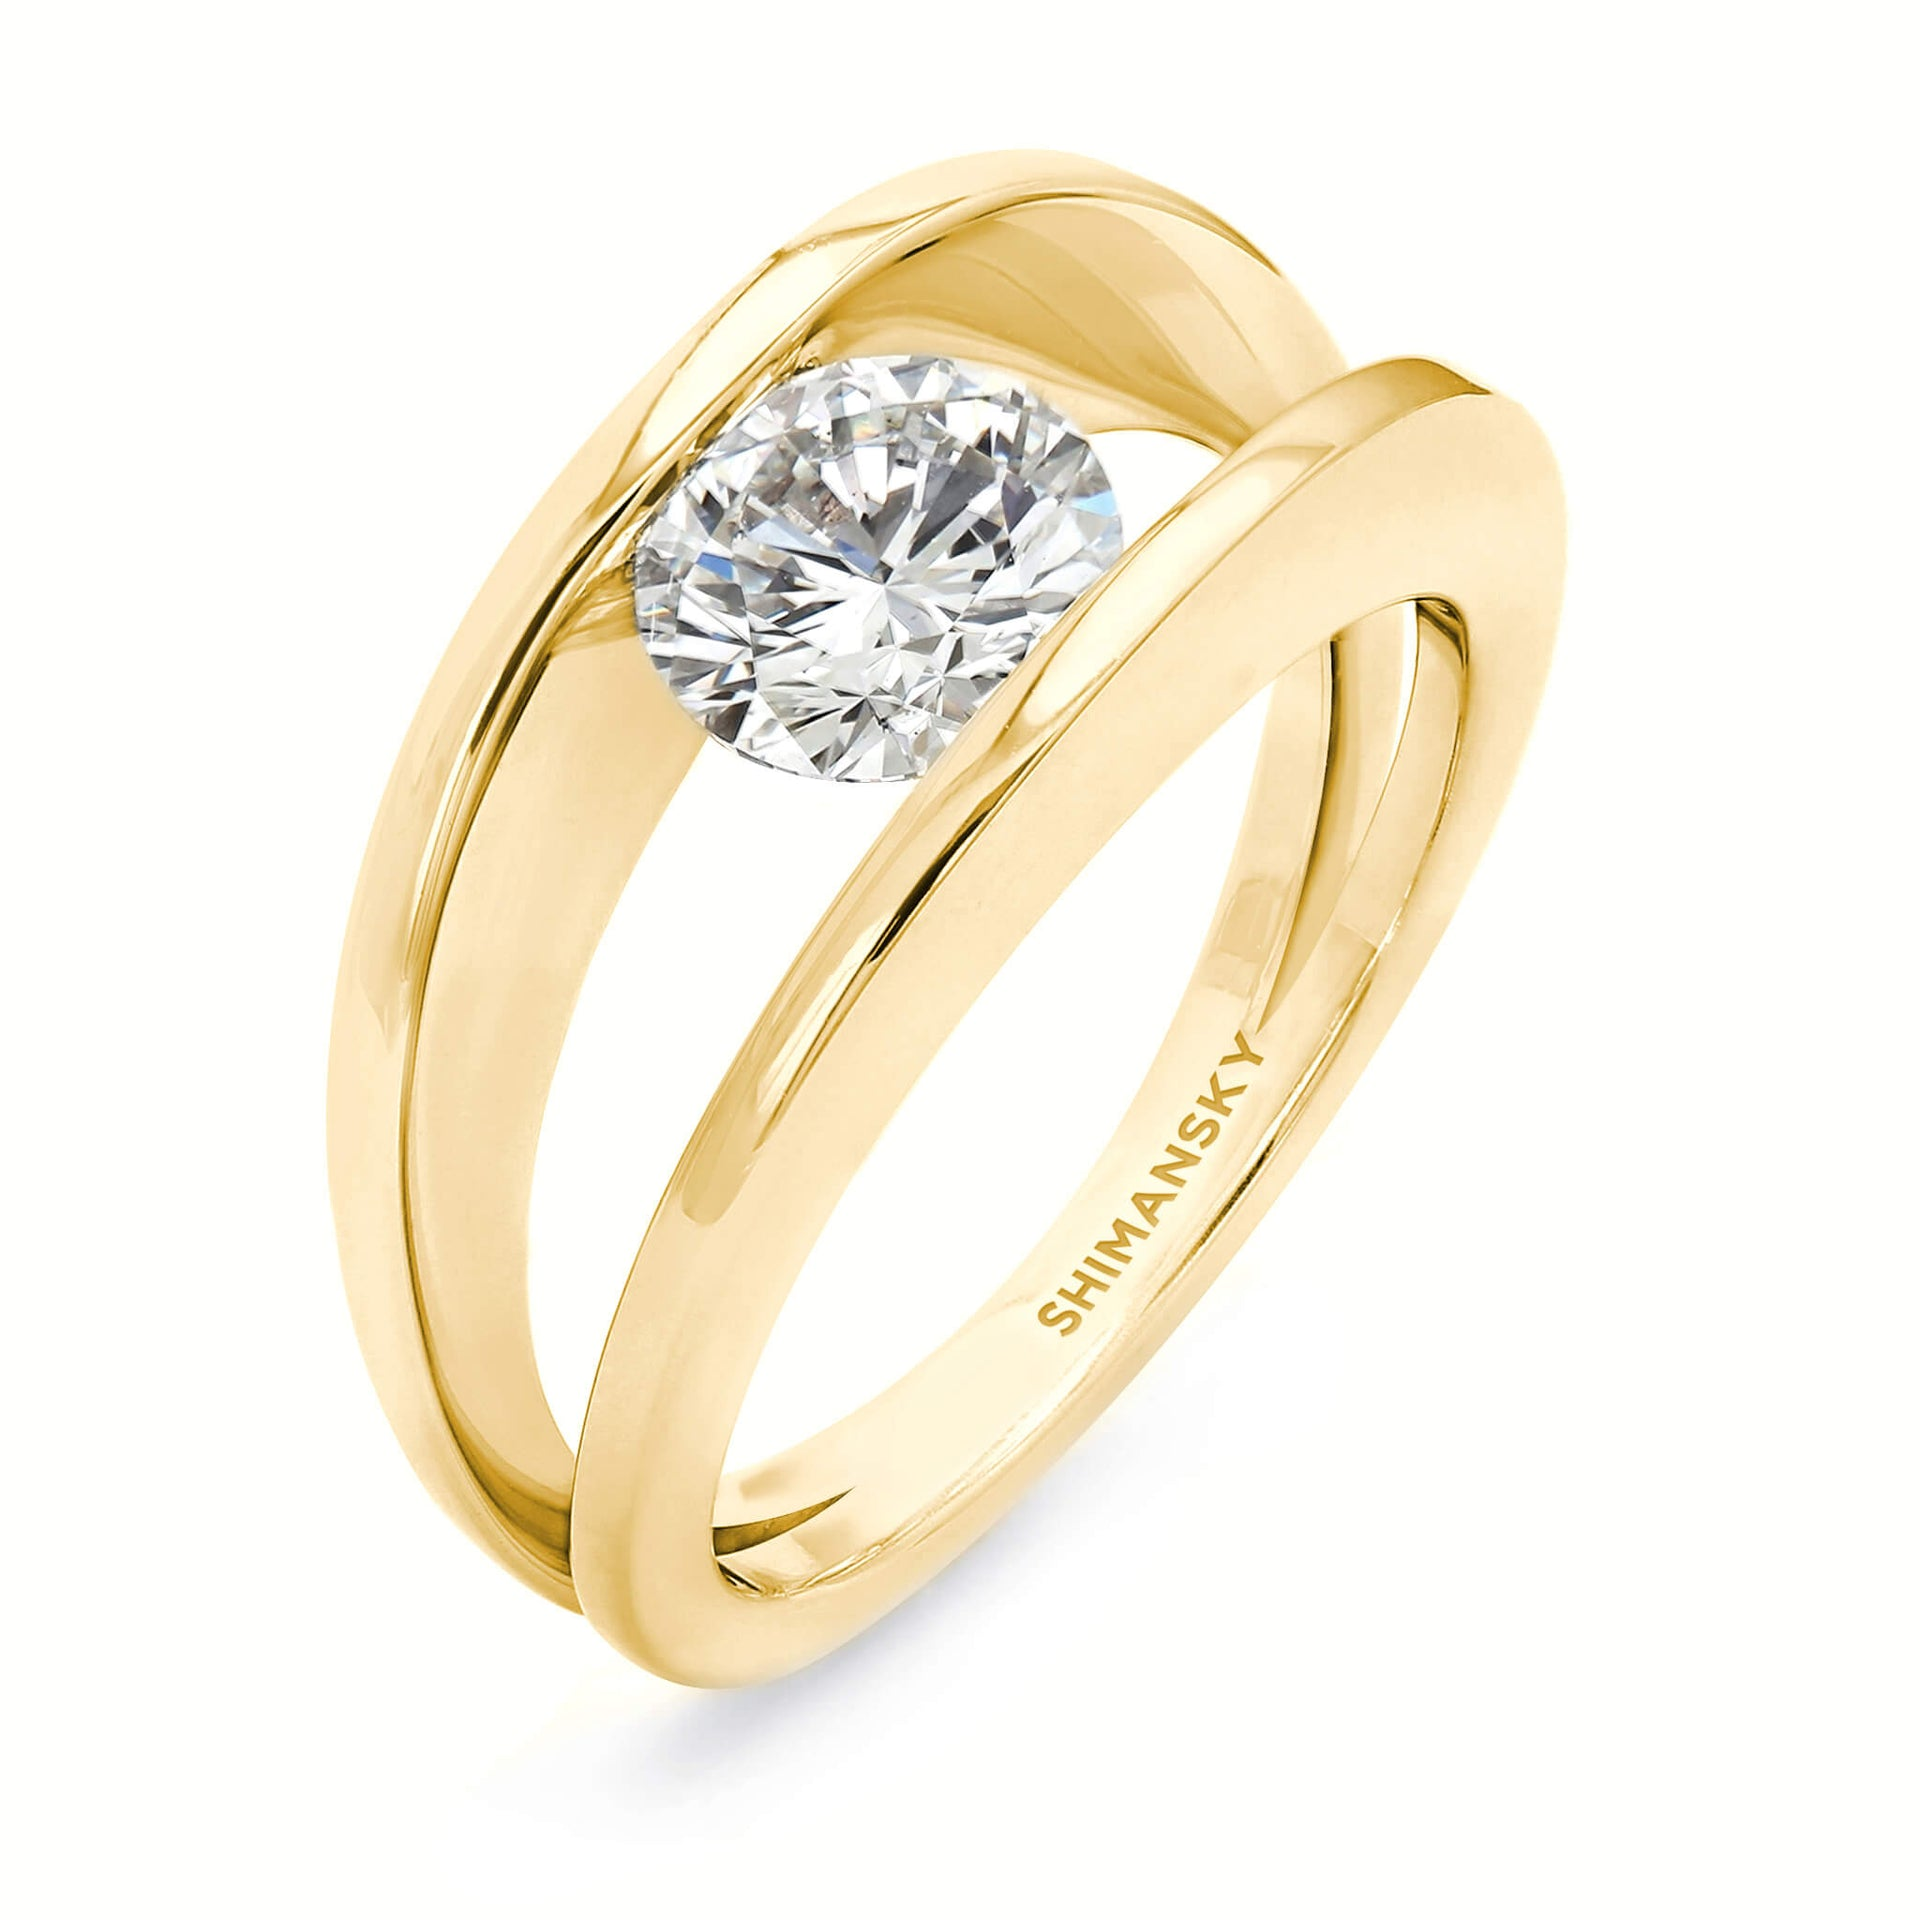 The Iconic 1ct Millennium Diamond Ring Crafted in 18K Yellow Gold 3D View